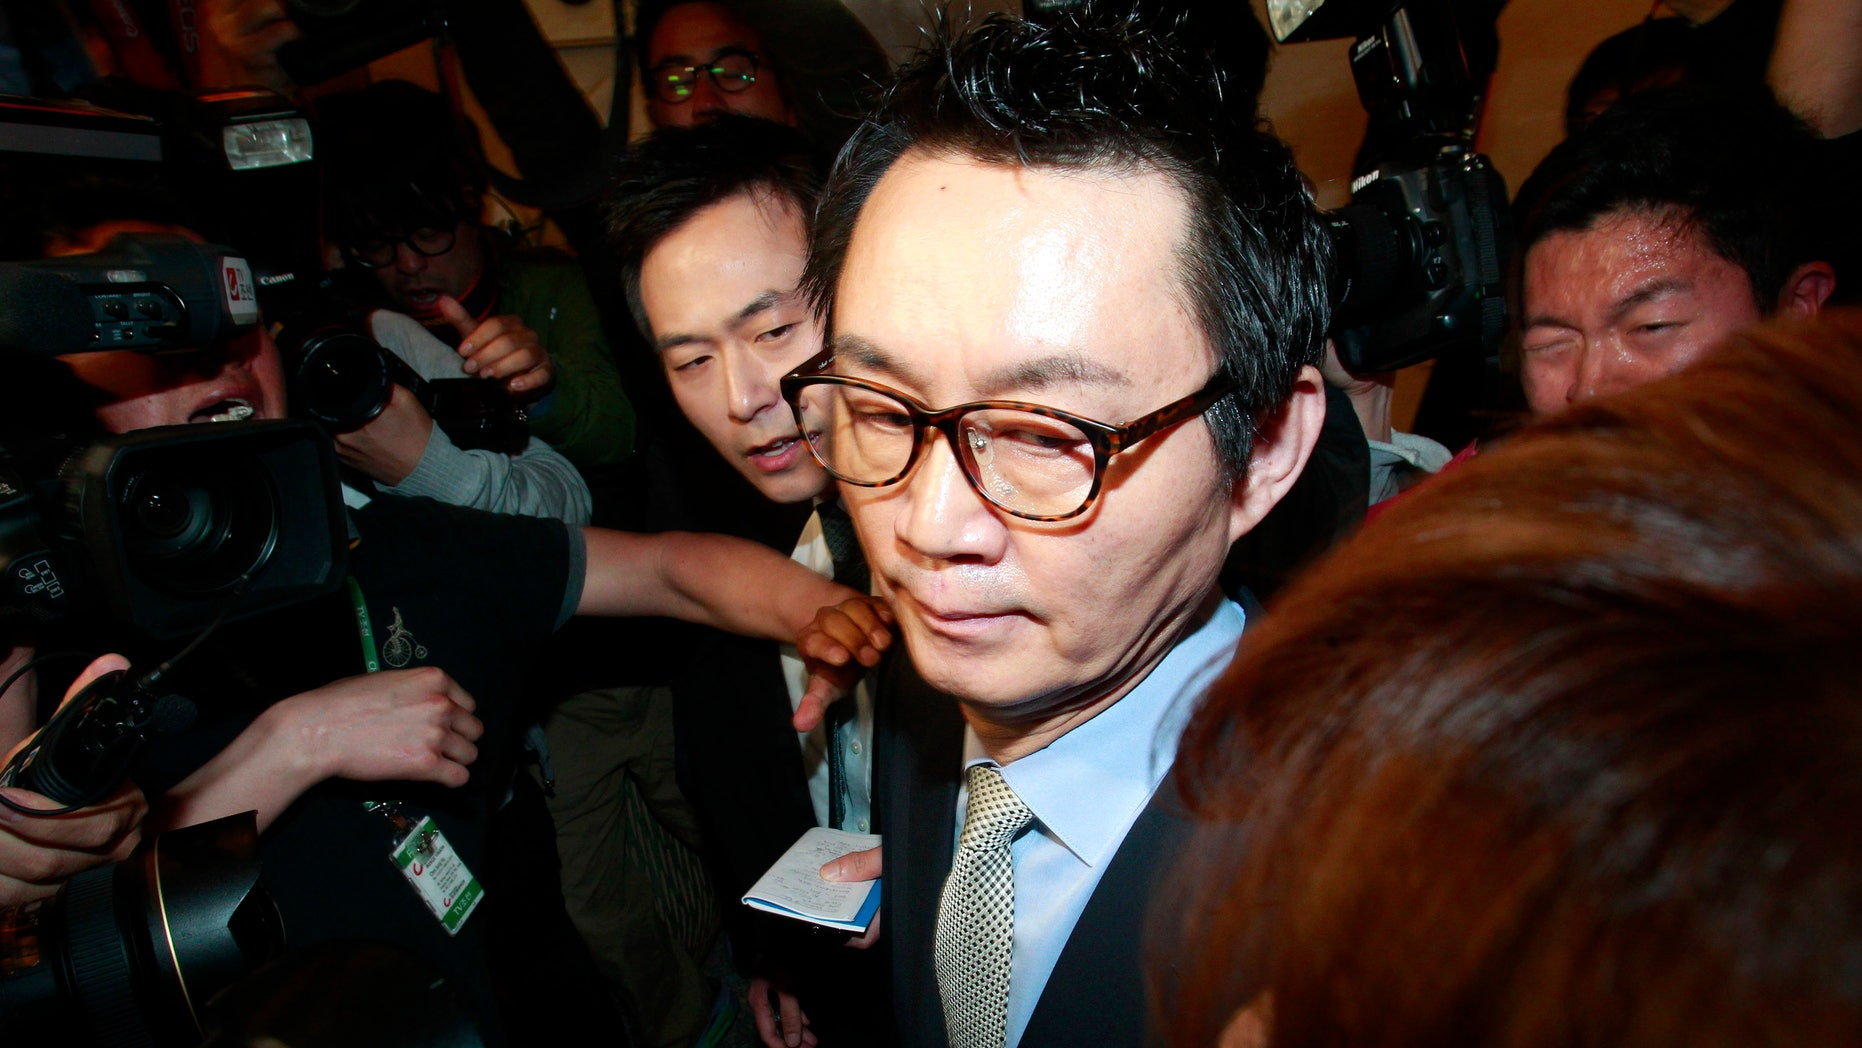 """South Korean President Park Geun-hye's spokesman Yoon Chang-jung surrounded by journalists leaves after a press conference in Seoul, South Korea, Saturday, May 11, 2013. Park fired Yoon because of what her office said Friday was a """"disgraceful incident"""" during Park's trip to the United States, in what could be a domestic blow after an otherwise widely praised appearance in Washington. Without elaborating, the presidential Blue House said on its website that unspecified actions by Yoon marred the government's dignity. (AP Photo/Ahn Young-joon)"""